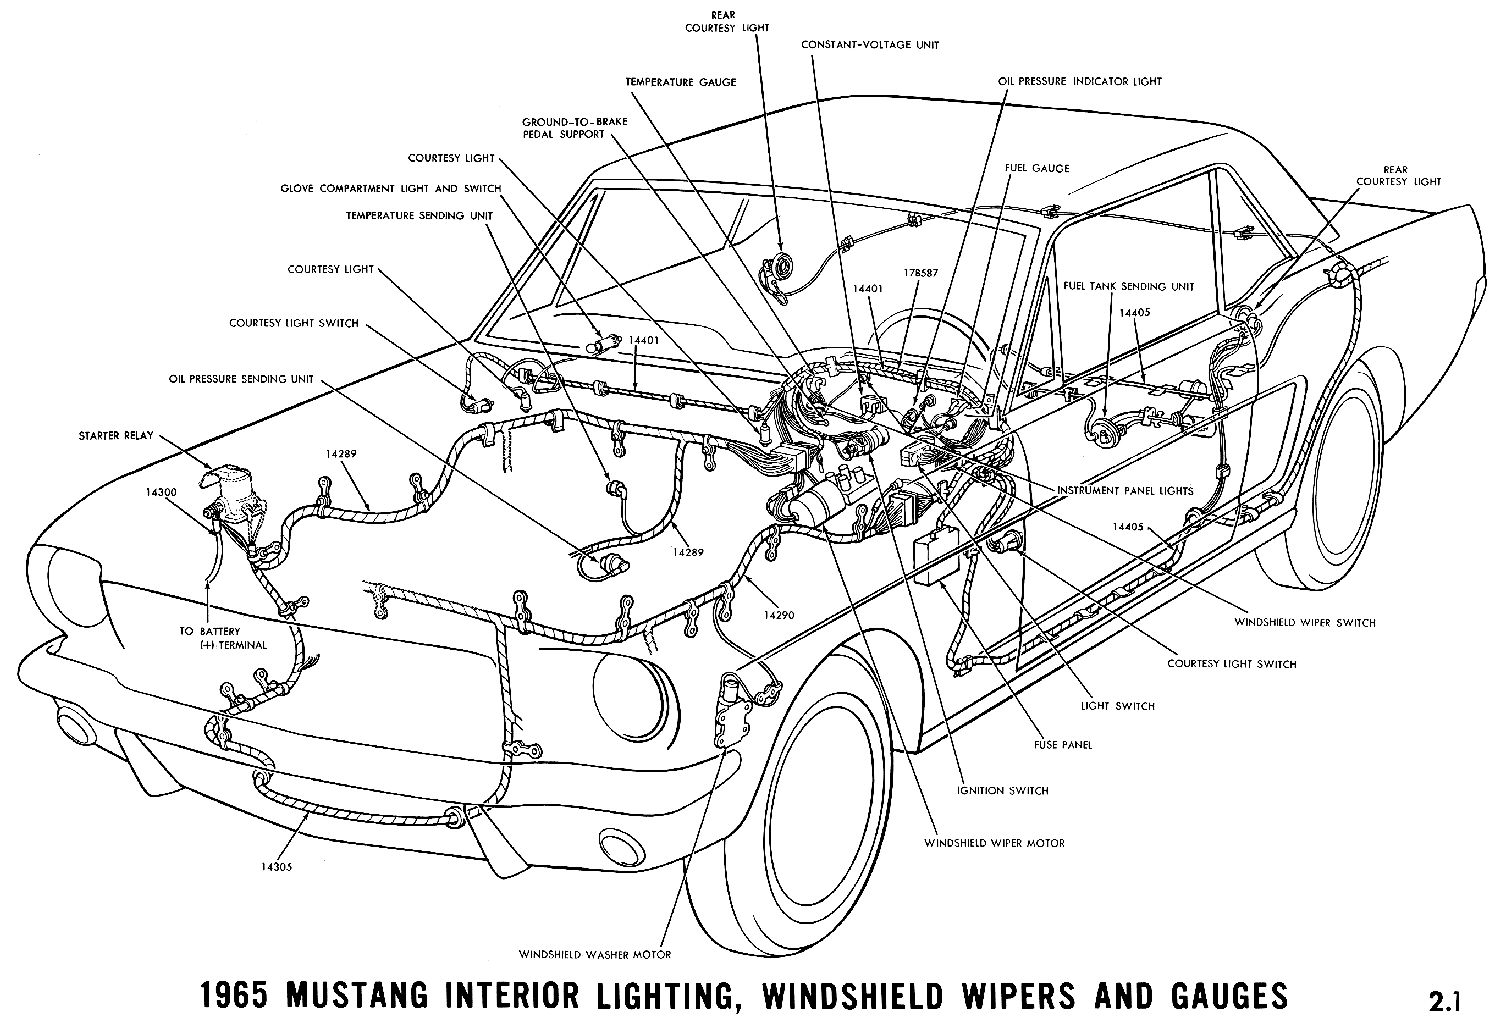 1965 Mustang Wiring Diagrams Average Joe Restoration October 2012 Mercedes Fuse Box Diagram 1965f